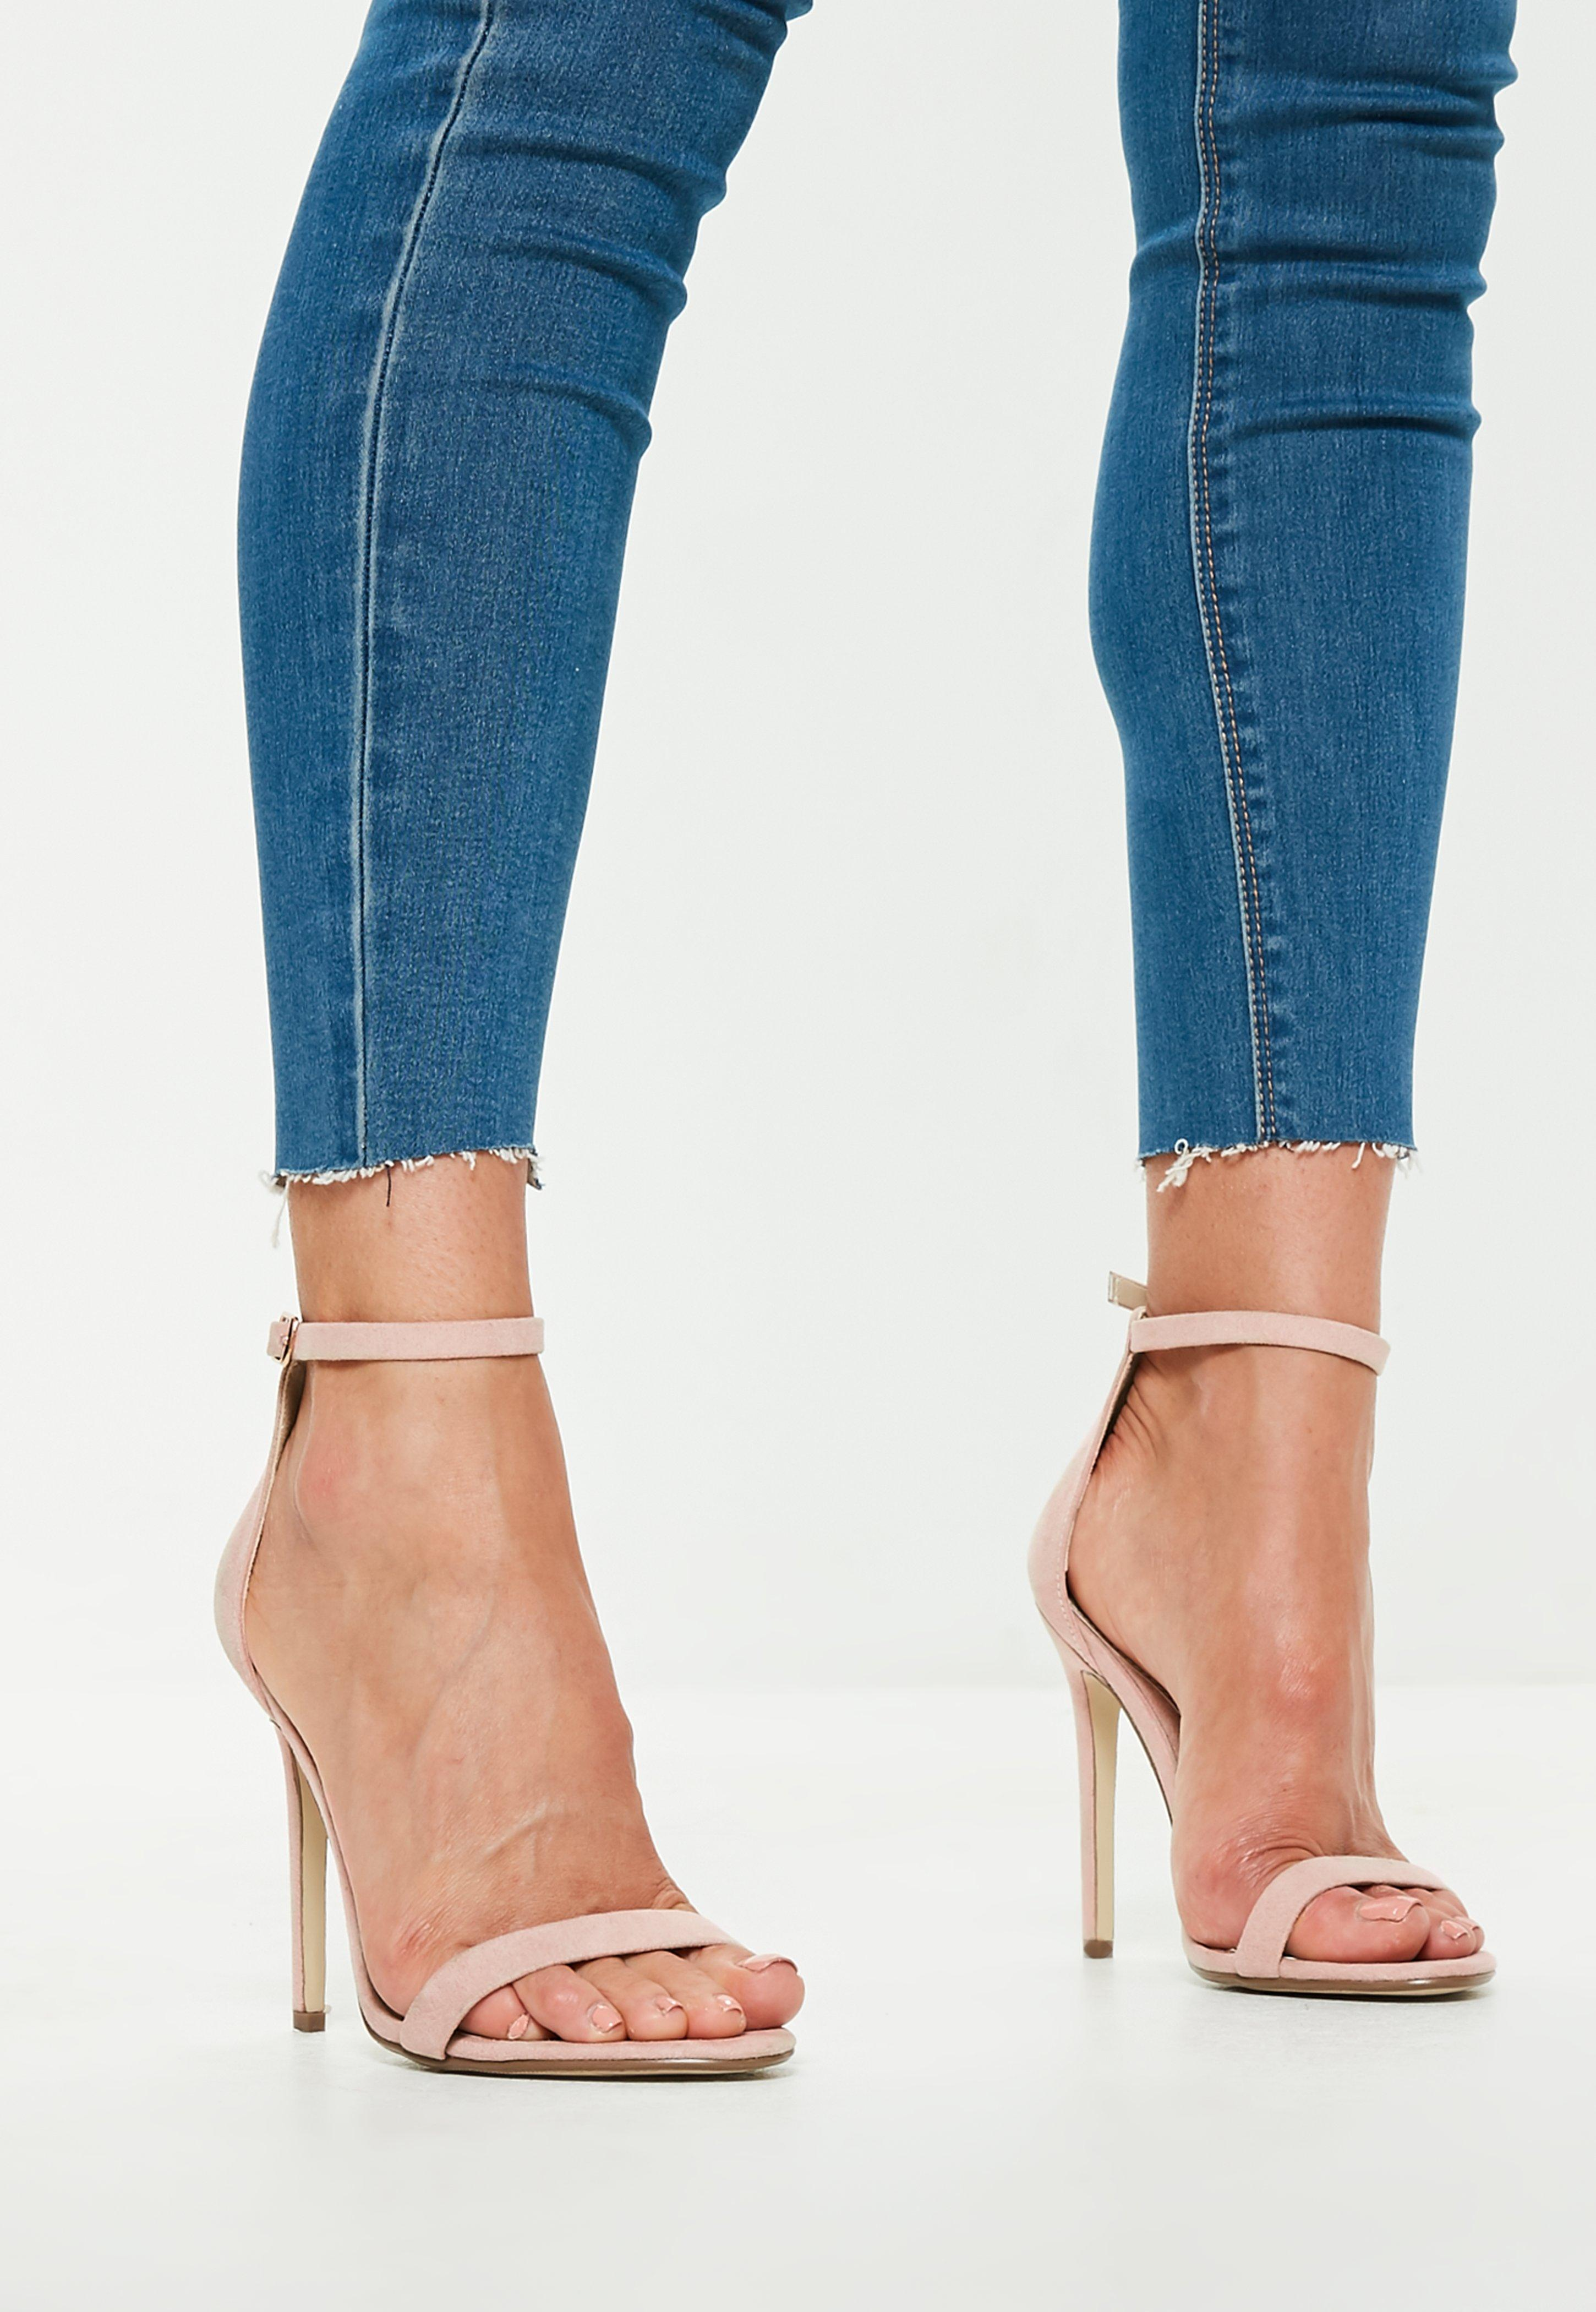 b2bc6966c8ac Lyst - Missguided Nude Faux Suede Two Strap Barely There Heels in Blue